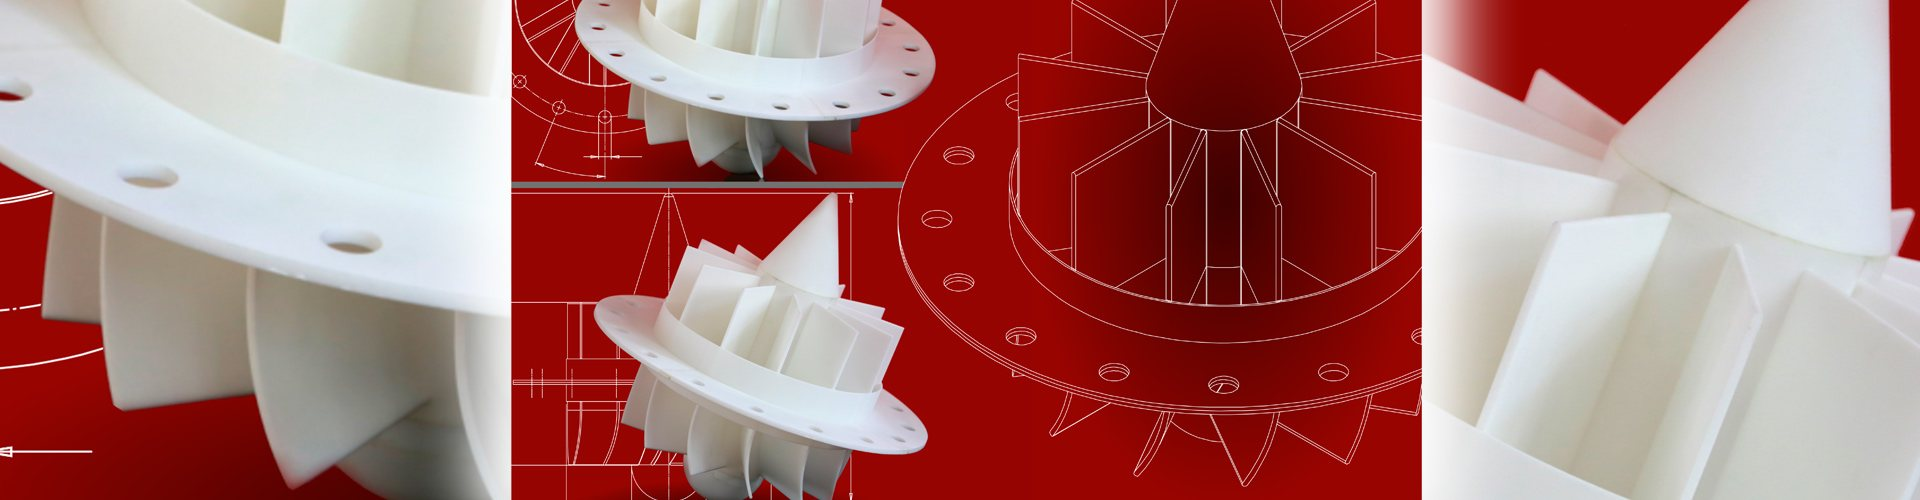 The picture shows the design of a swirl reducer kit for cyclone systems